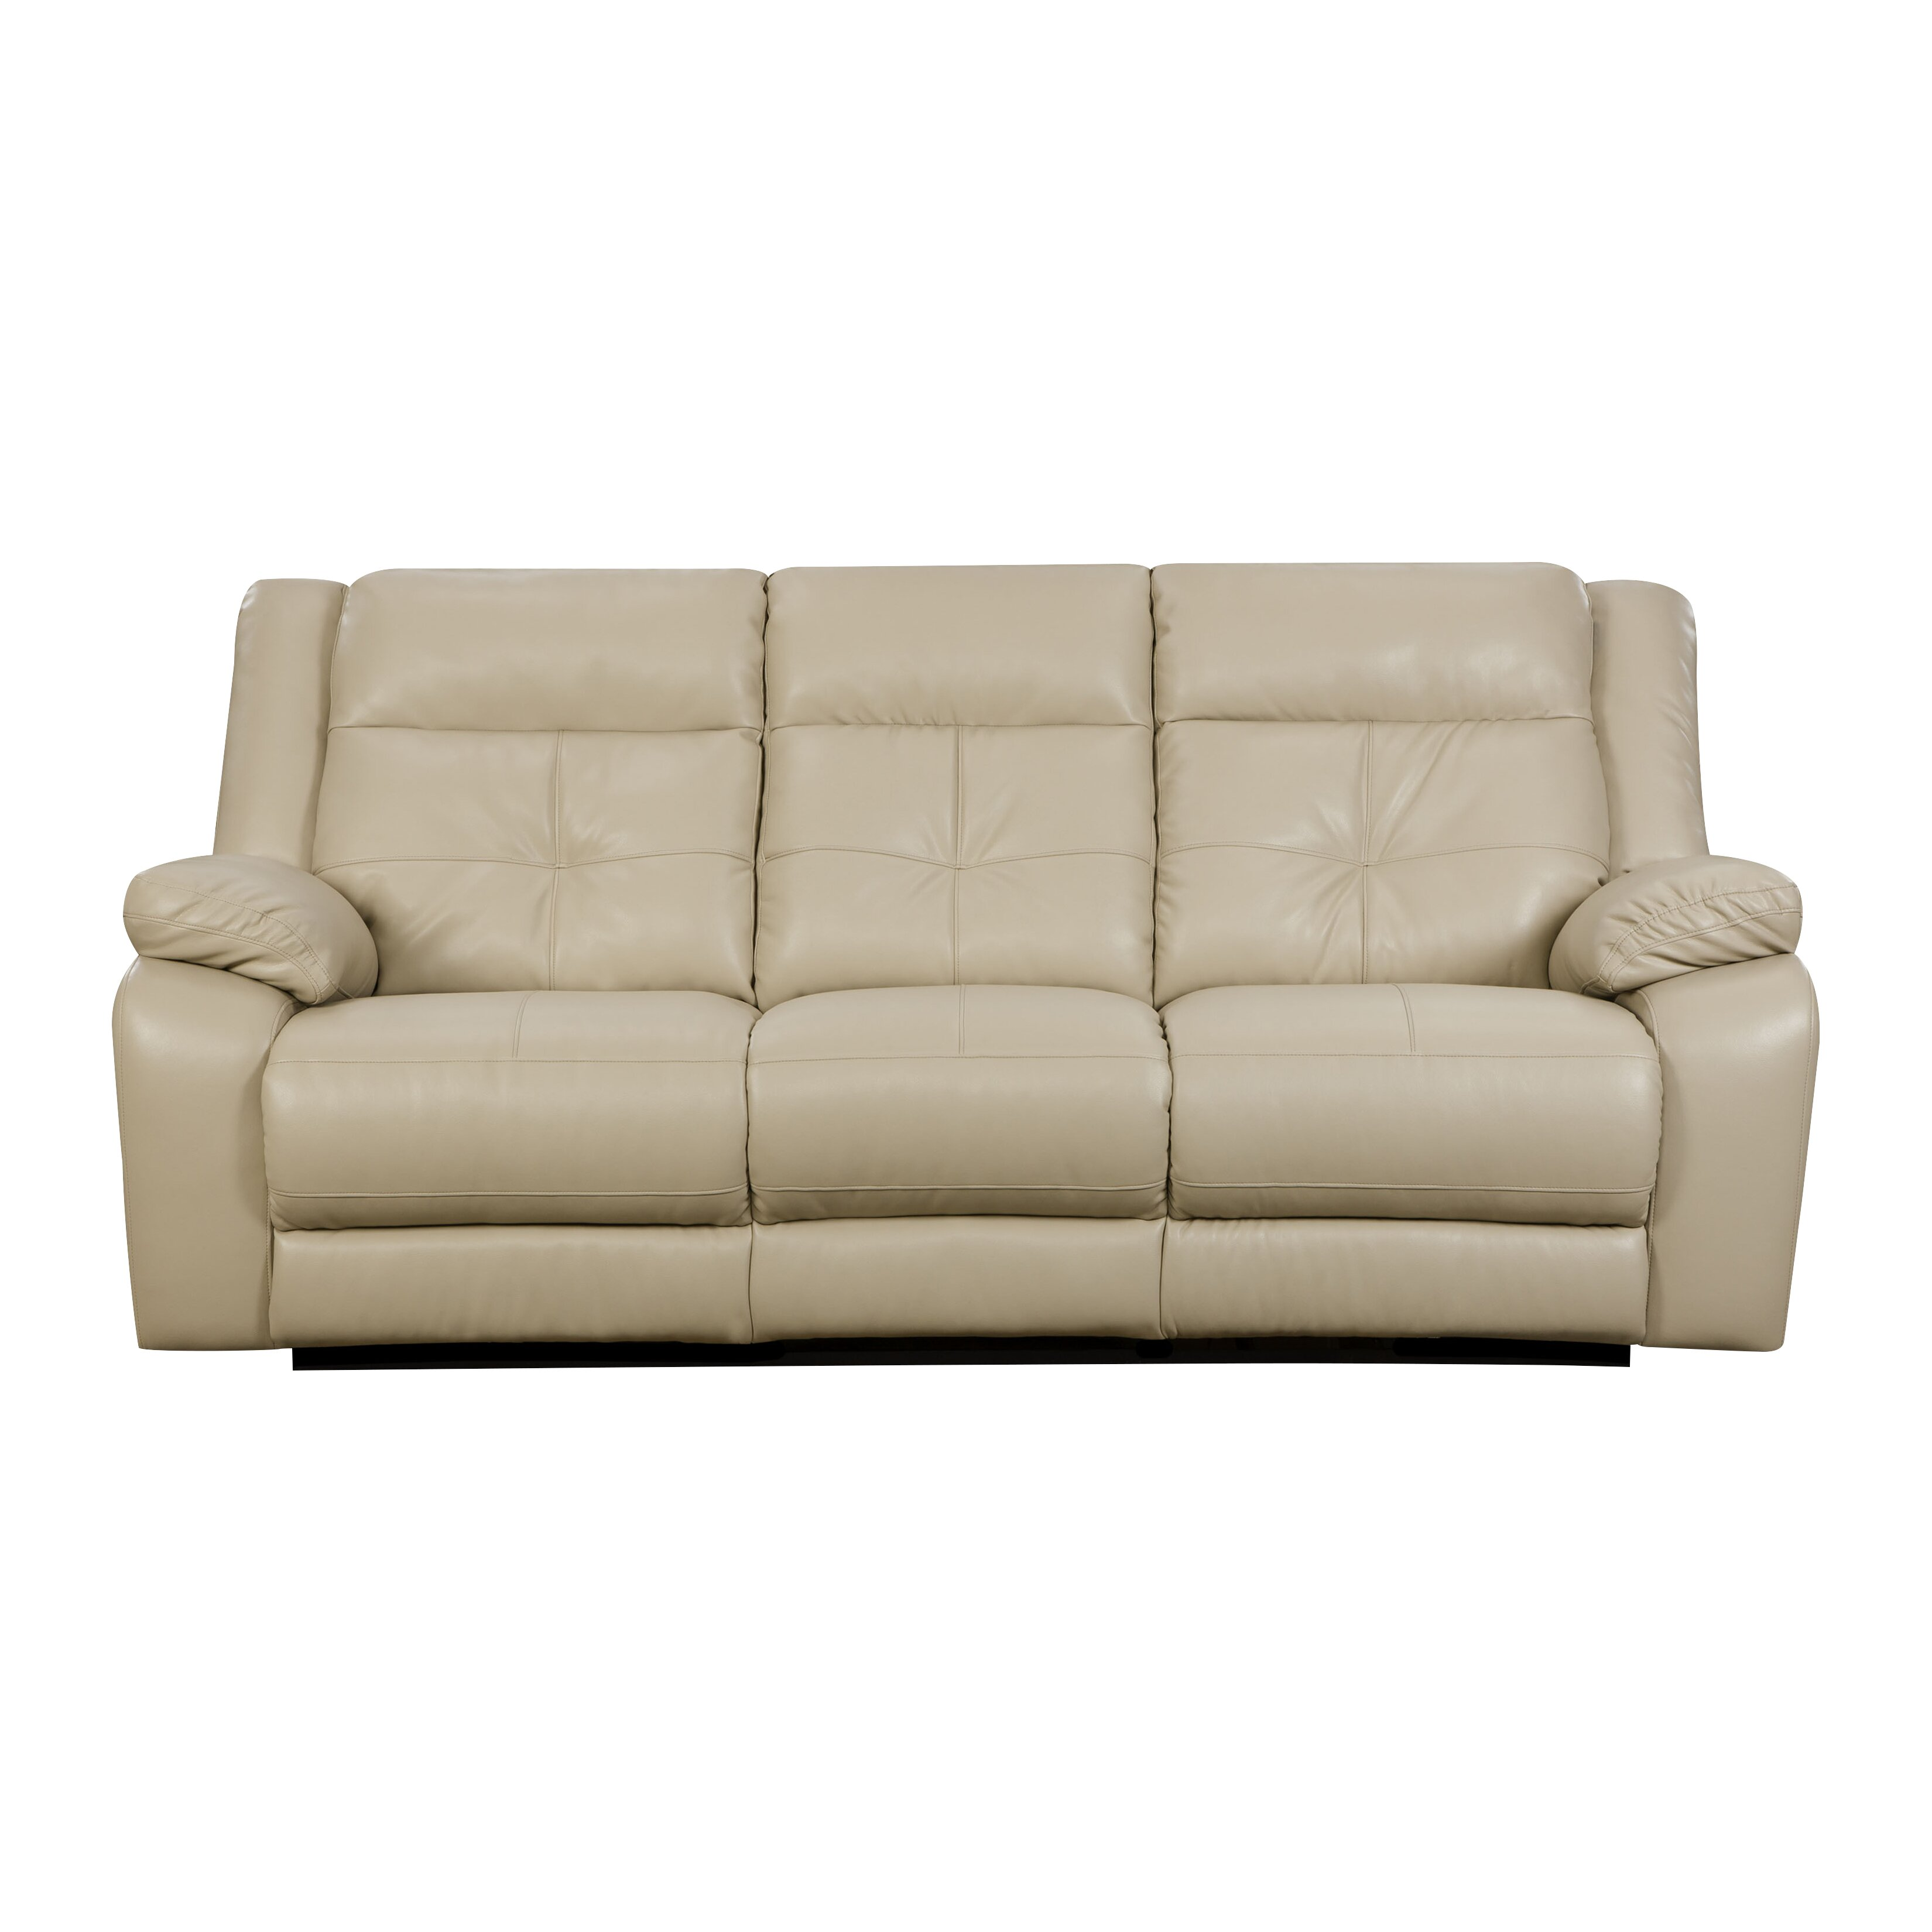 Simmons Upholstery Miracle Pearl Double Motion Sofa